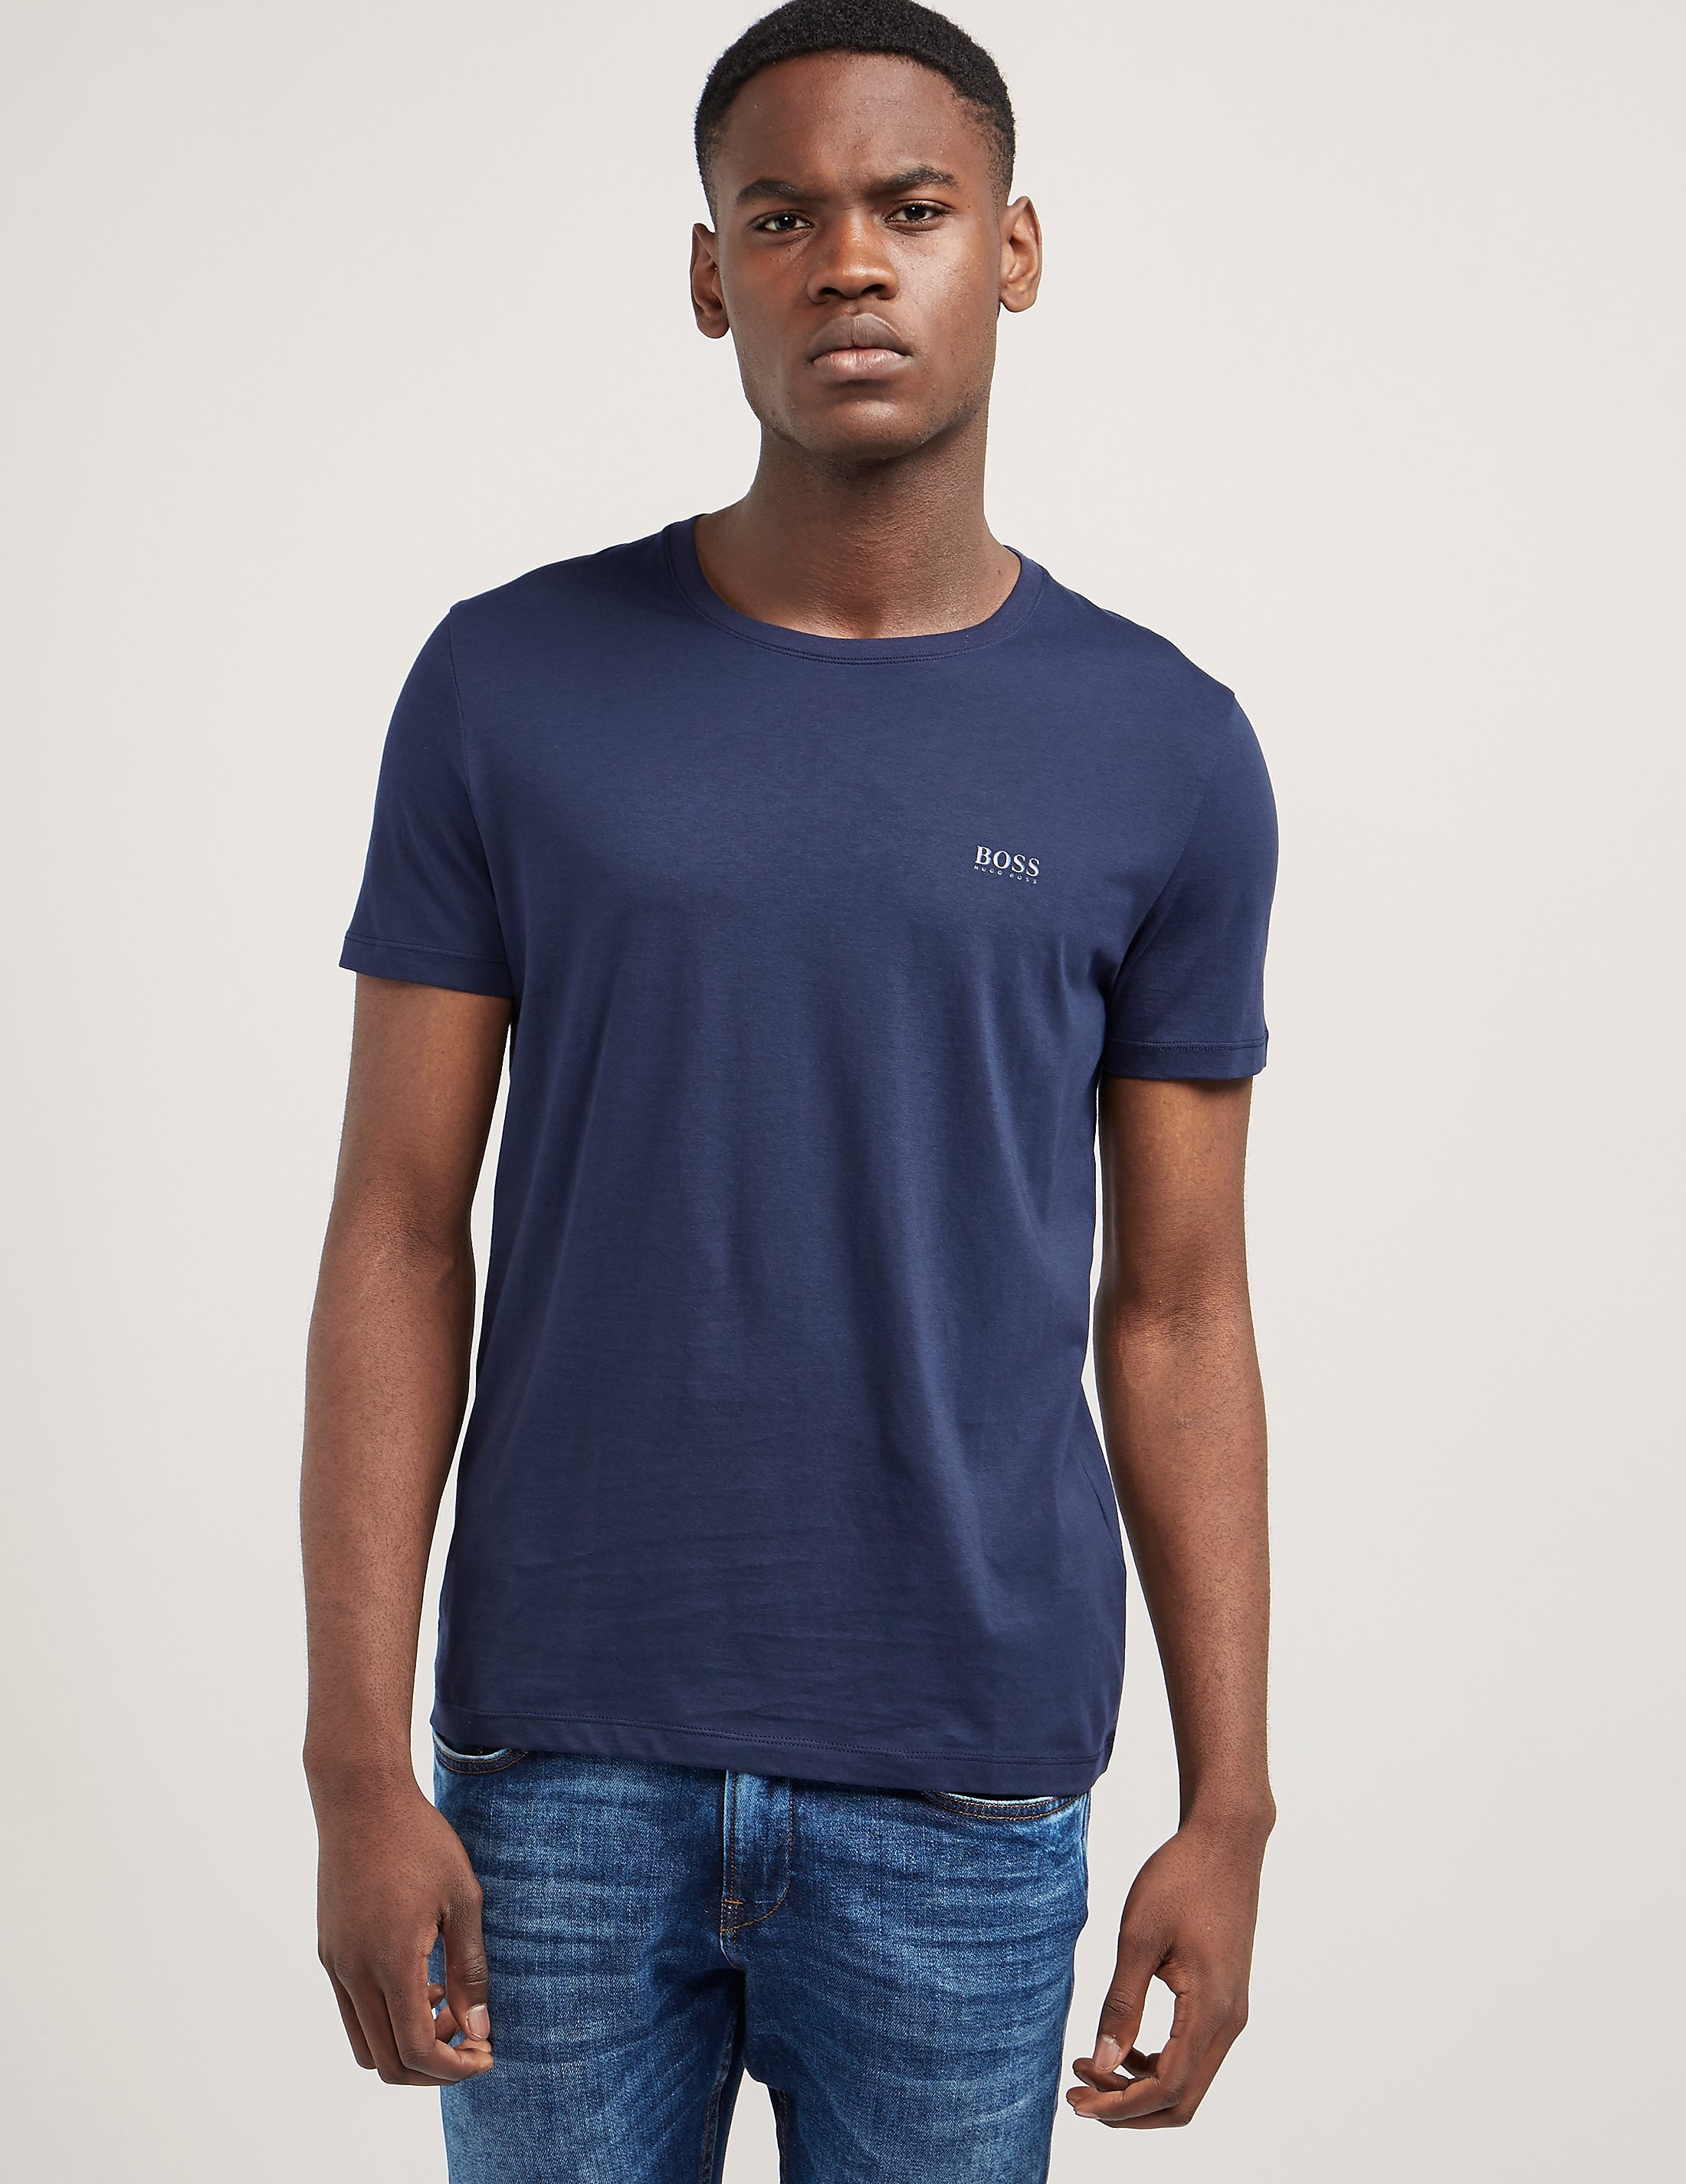 BOSS Classic Short Sleeve T-Shirt